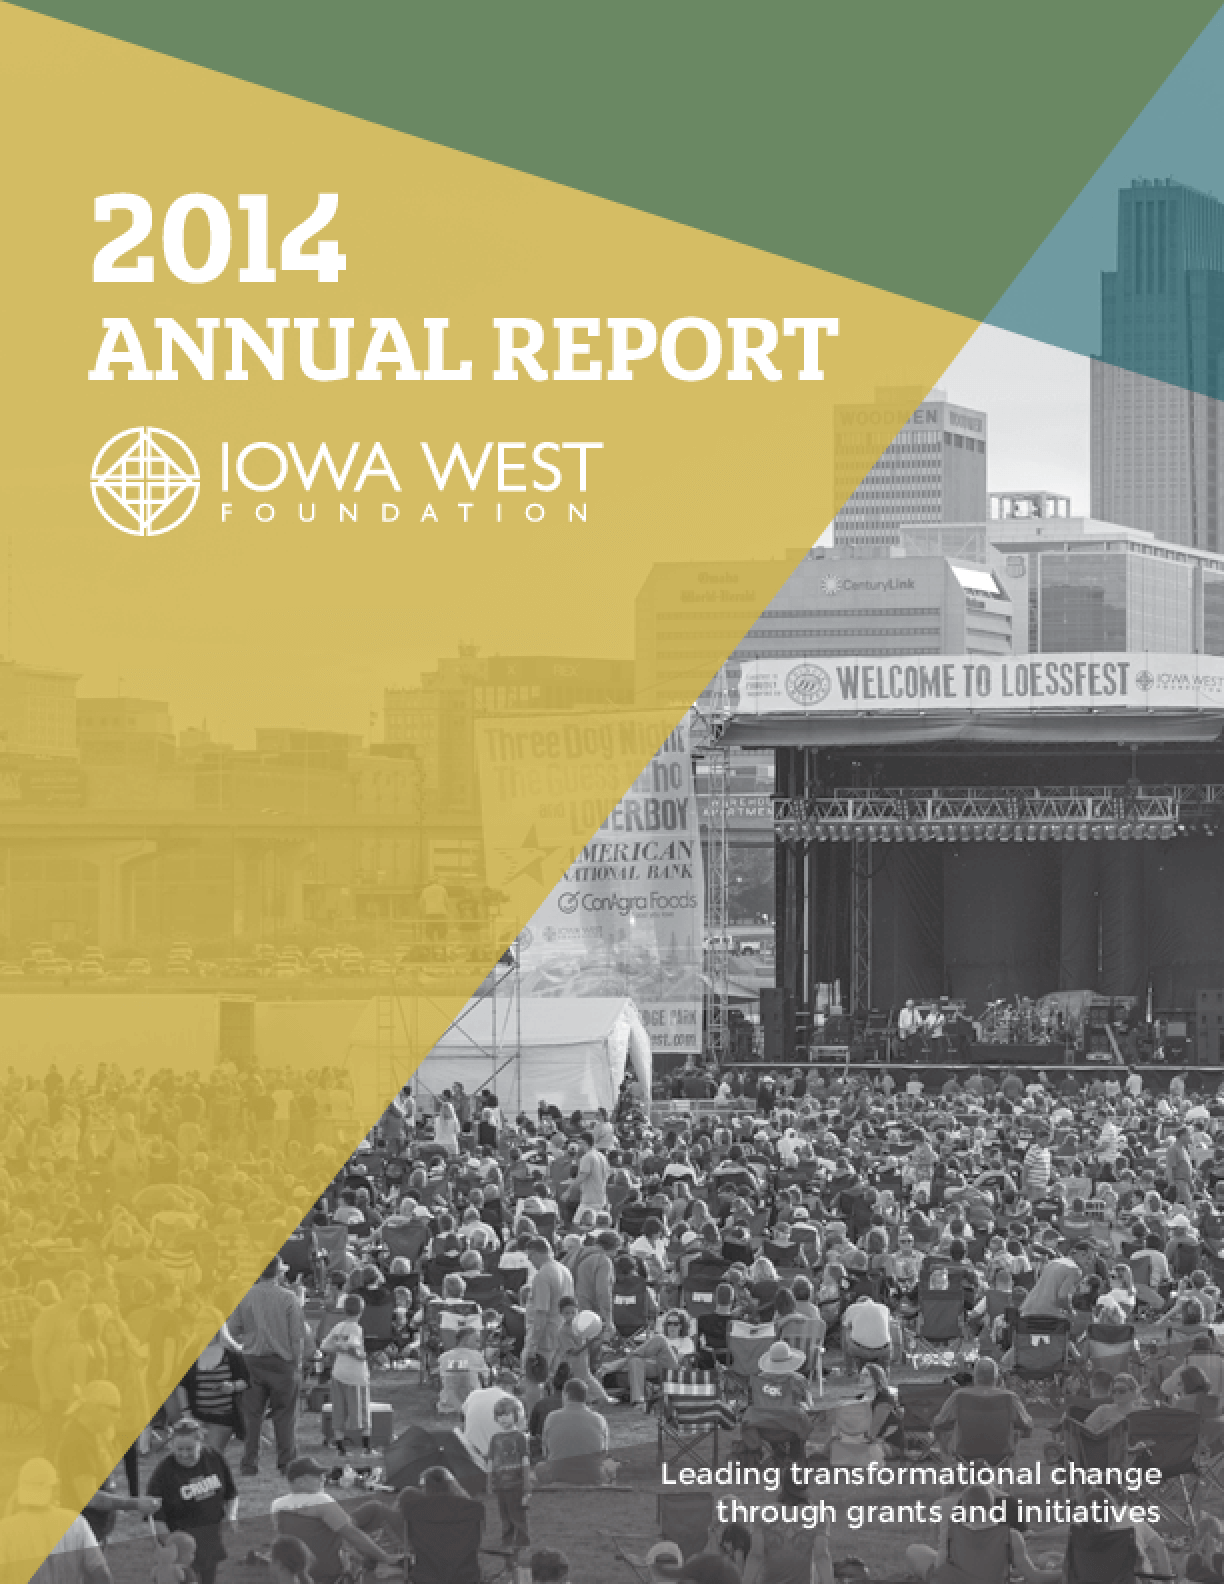 Iowa West Foundation: 2014 Annual Report